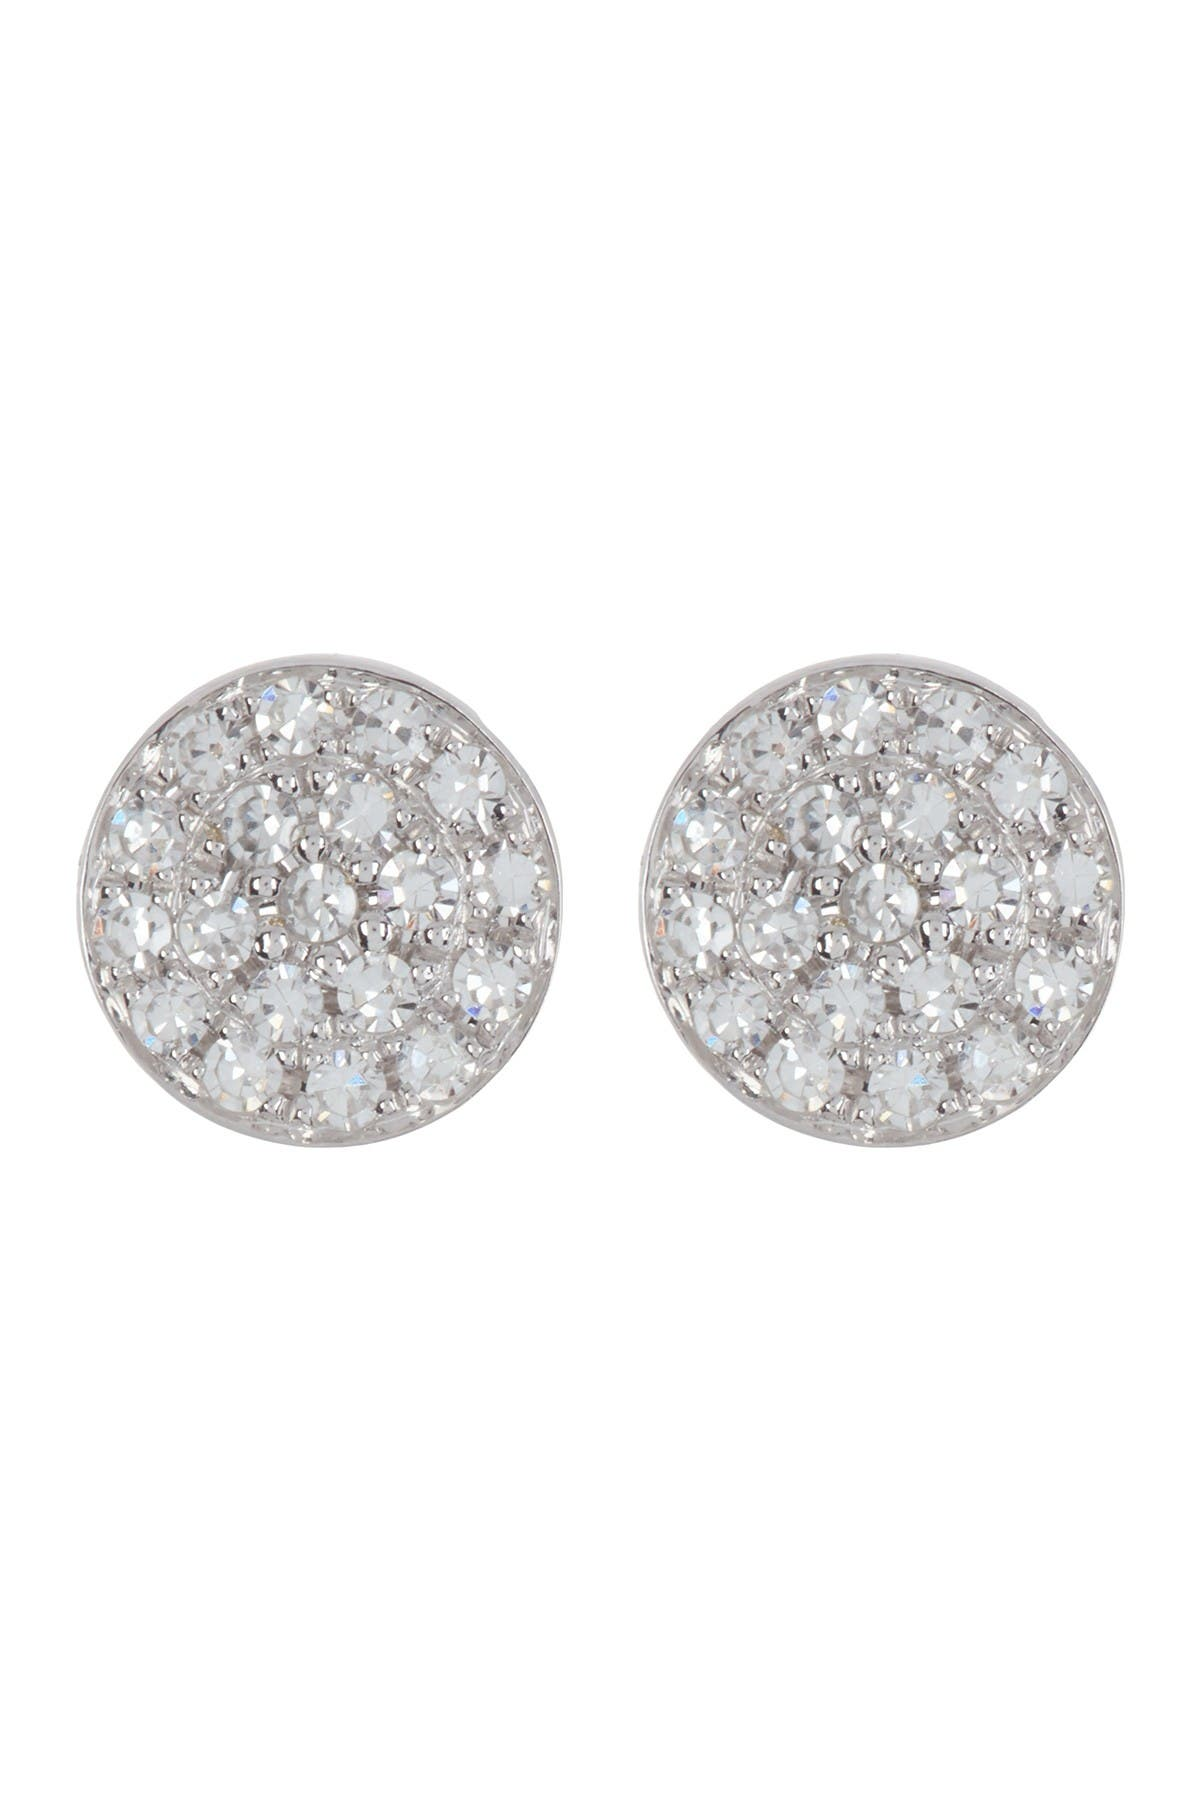 Image of Ron Hami 14K White Gold Micro Diamond Pave Circular Stud Earrings - 0.07 ctw